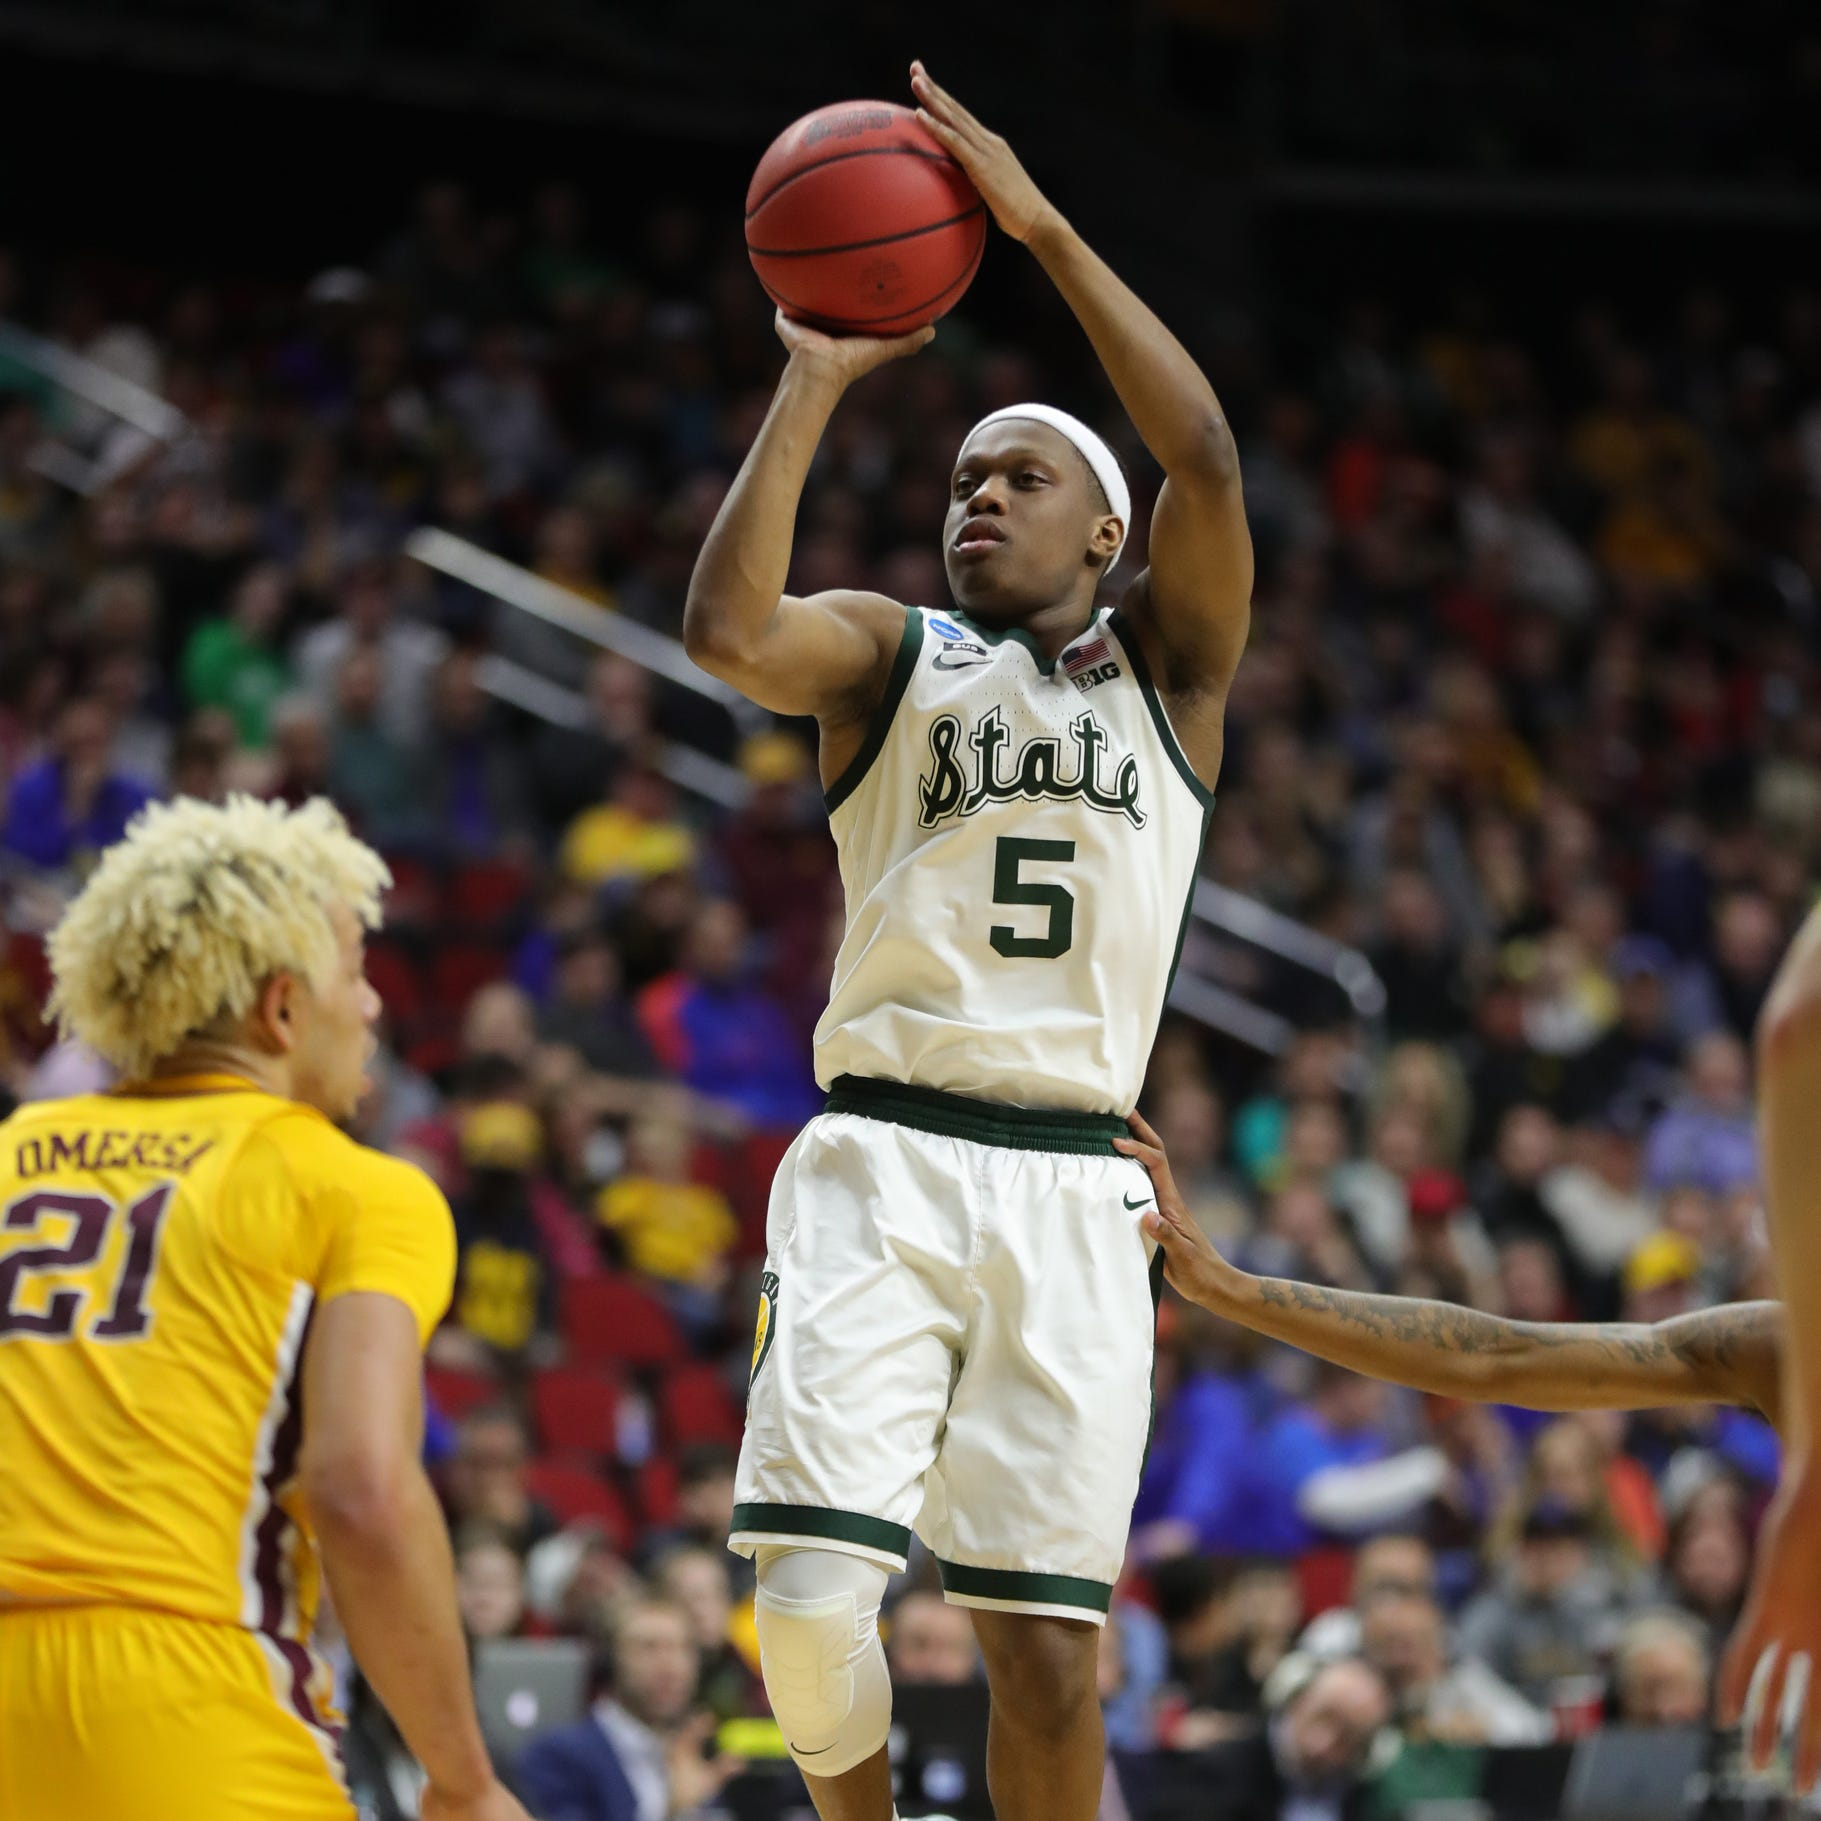 Cassius Winston took over when Michigan State needed him most, to get to the Sweet 16